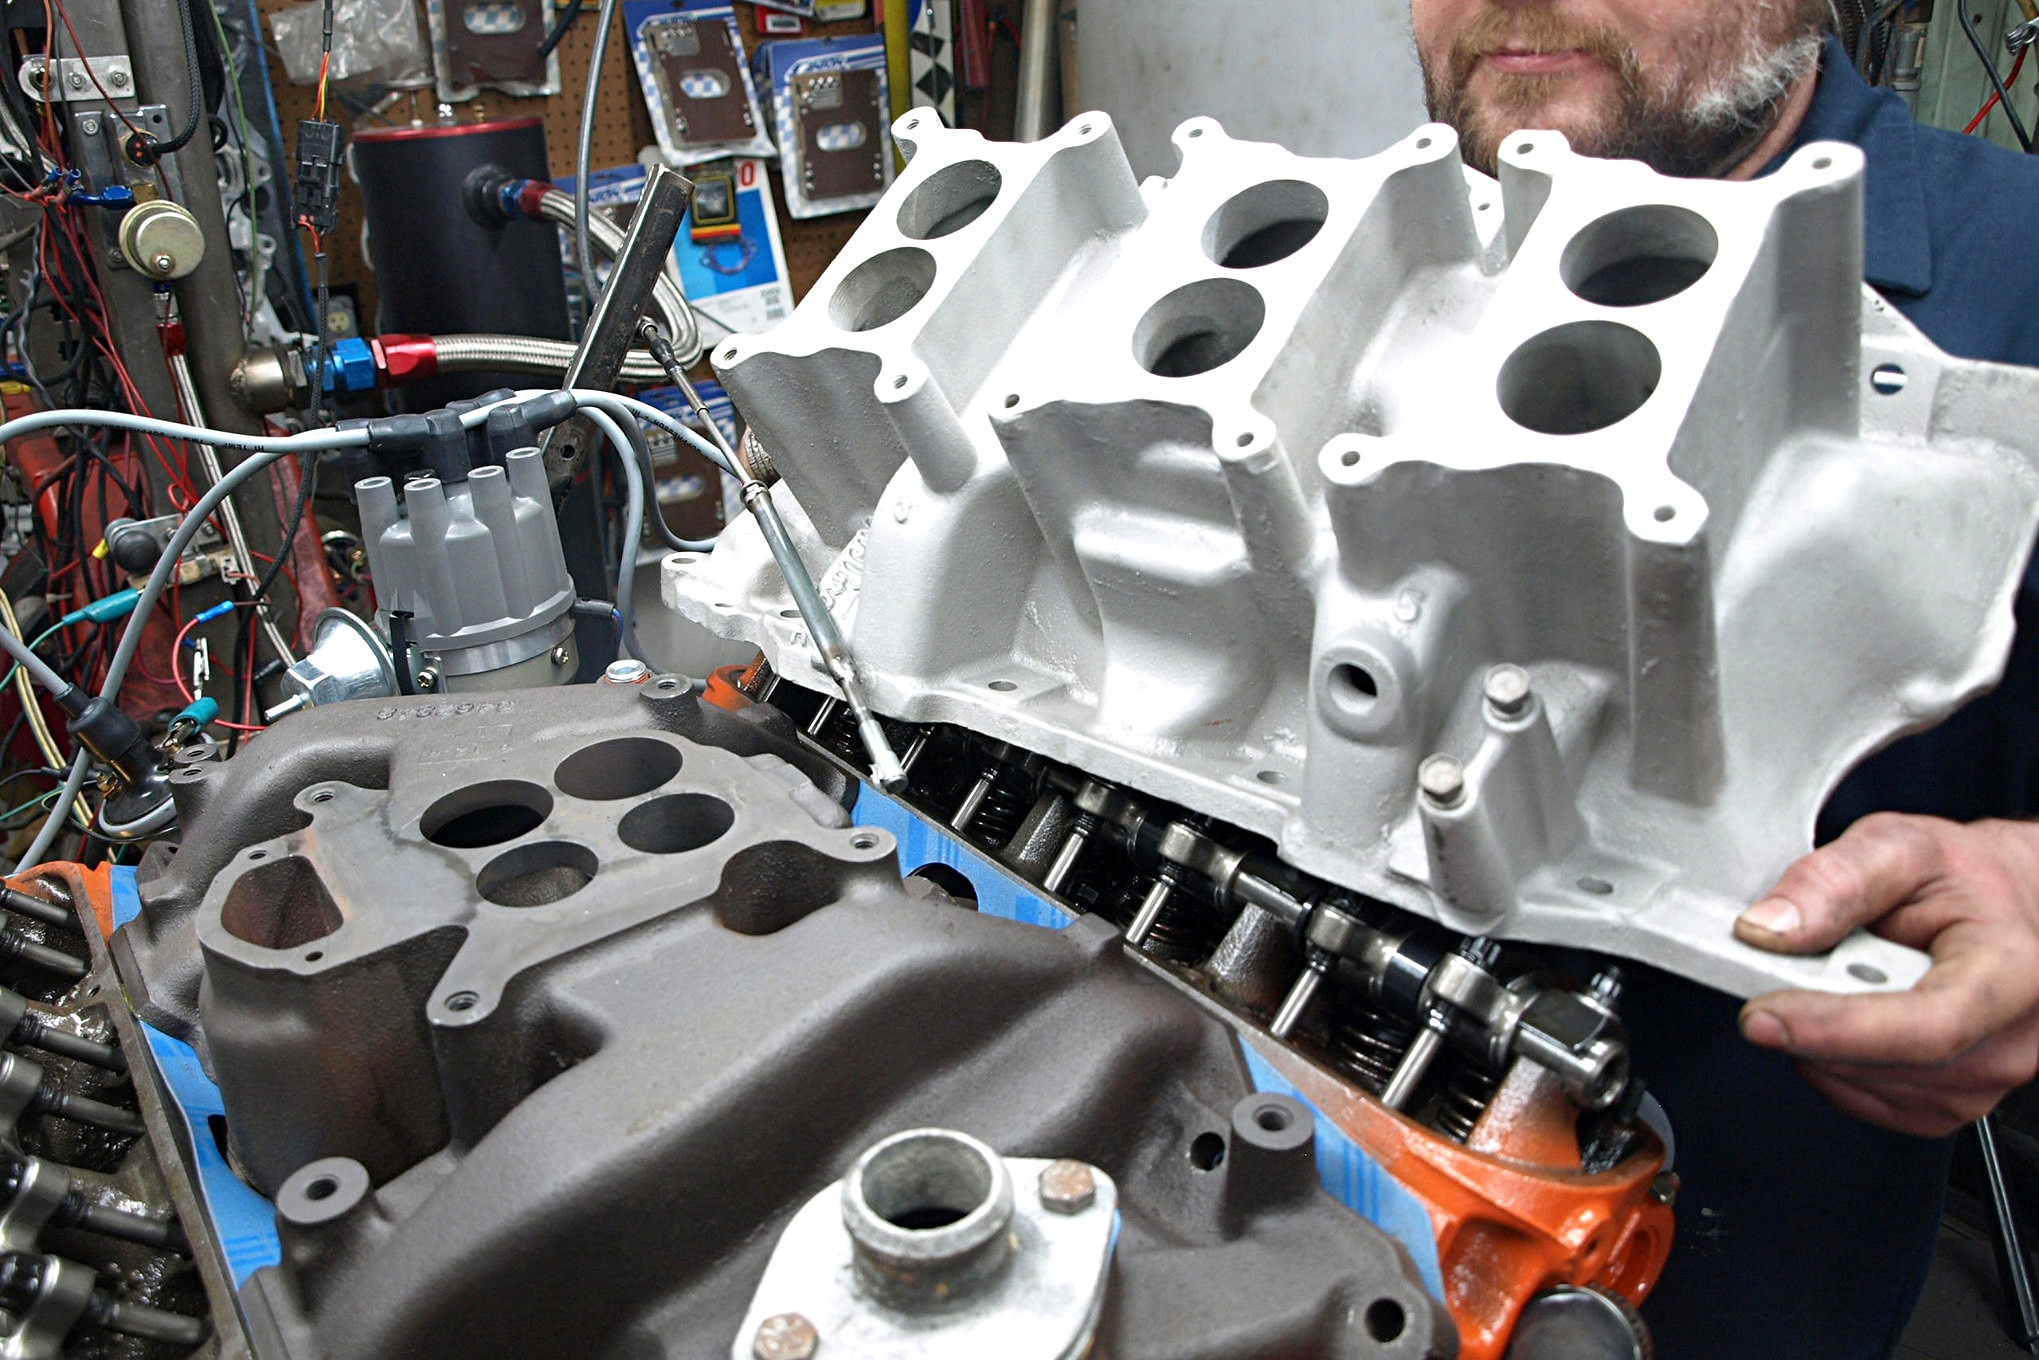 How Bad Did Mopars 340 Beat Ford Chevy Shocking New Data 630 Plymouth Engine Diagram The Stock Dual Plane Four Barrel Manifold 466 Pounds Is An Excellent